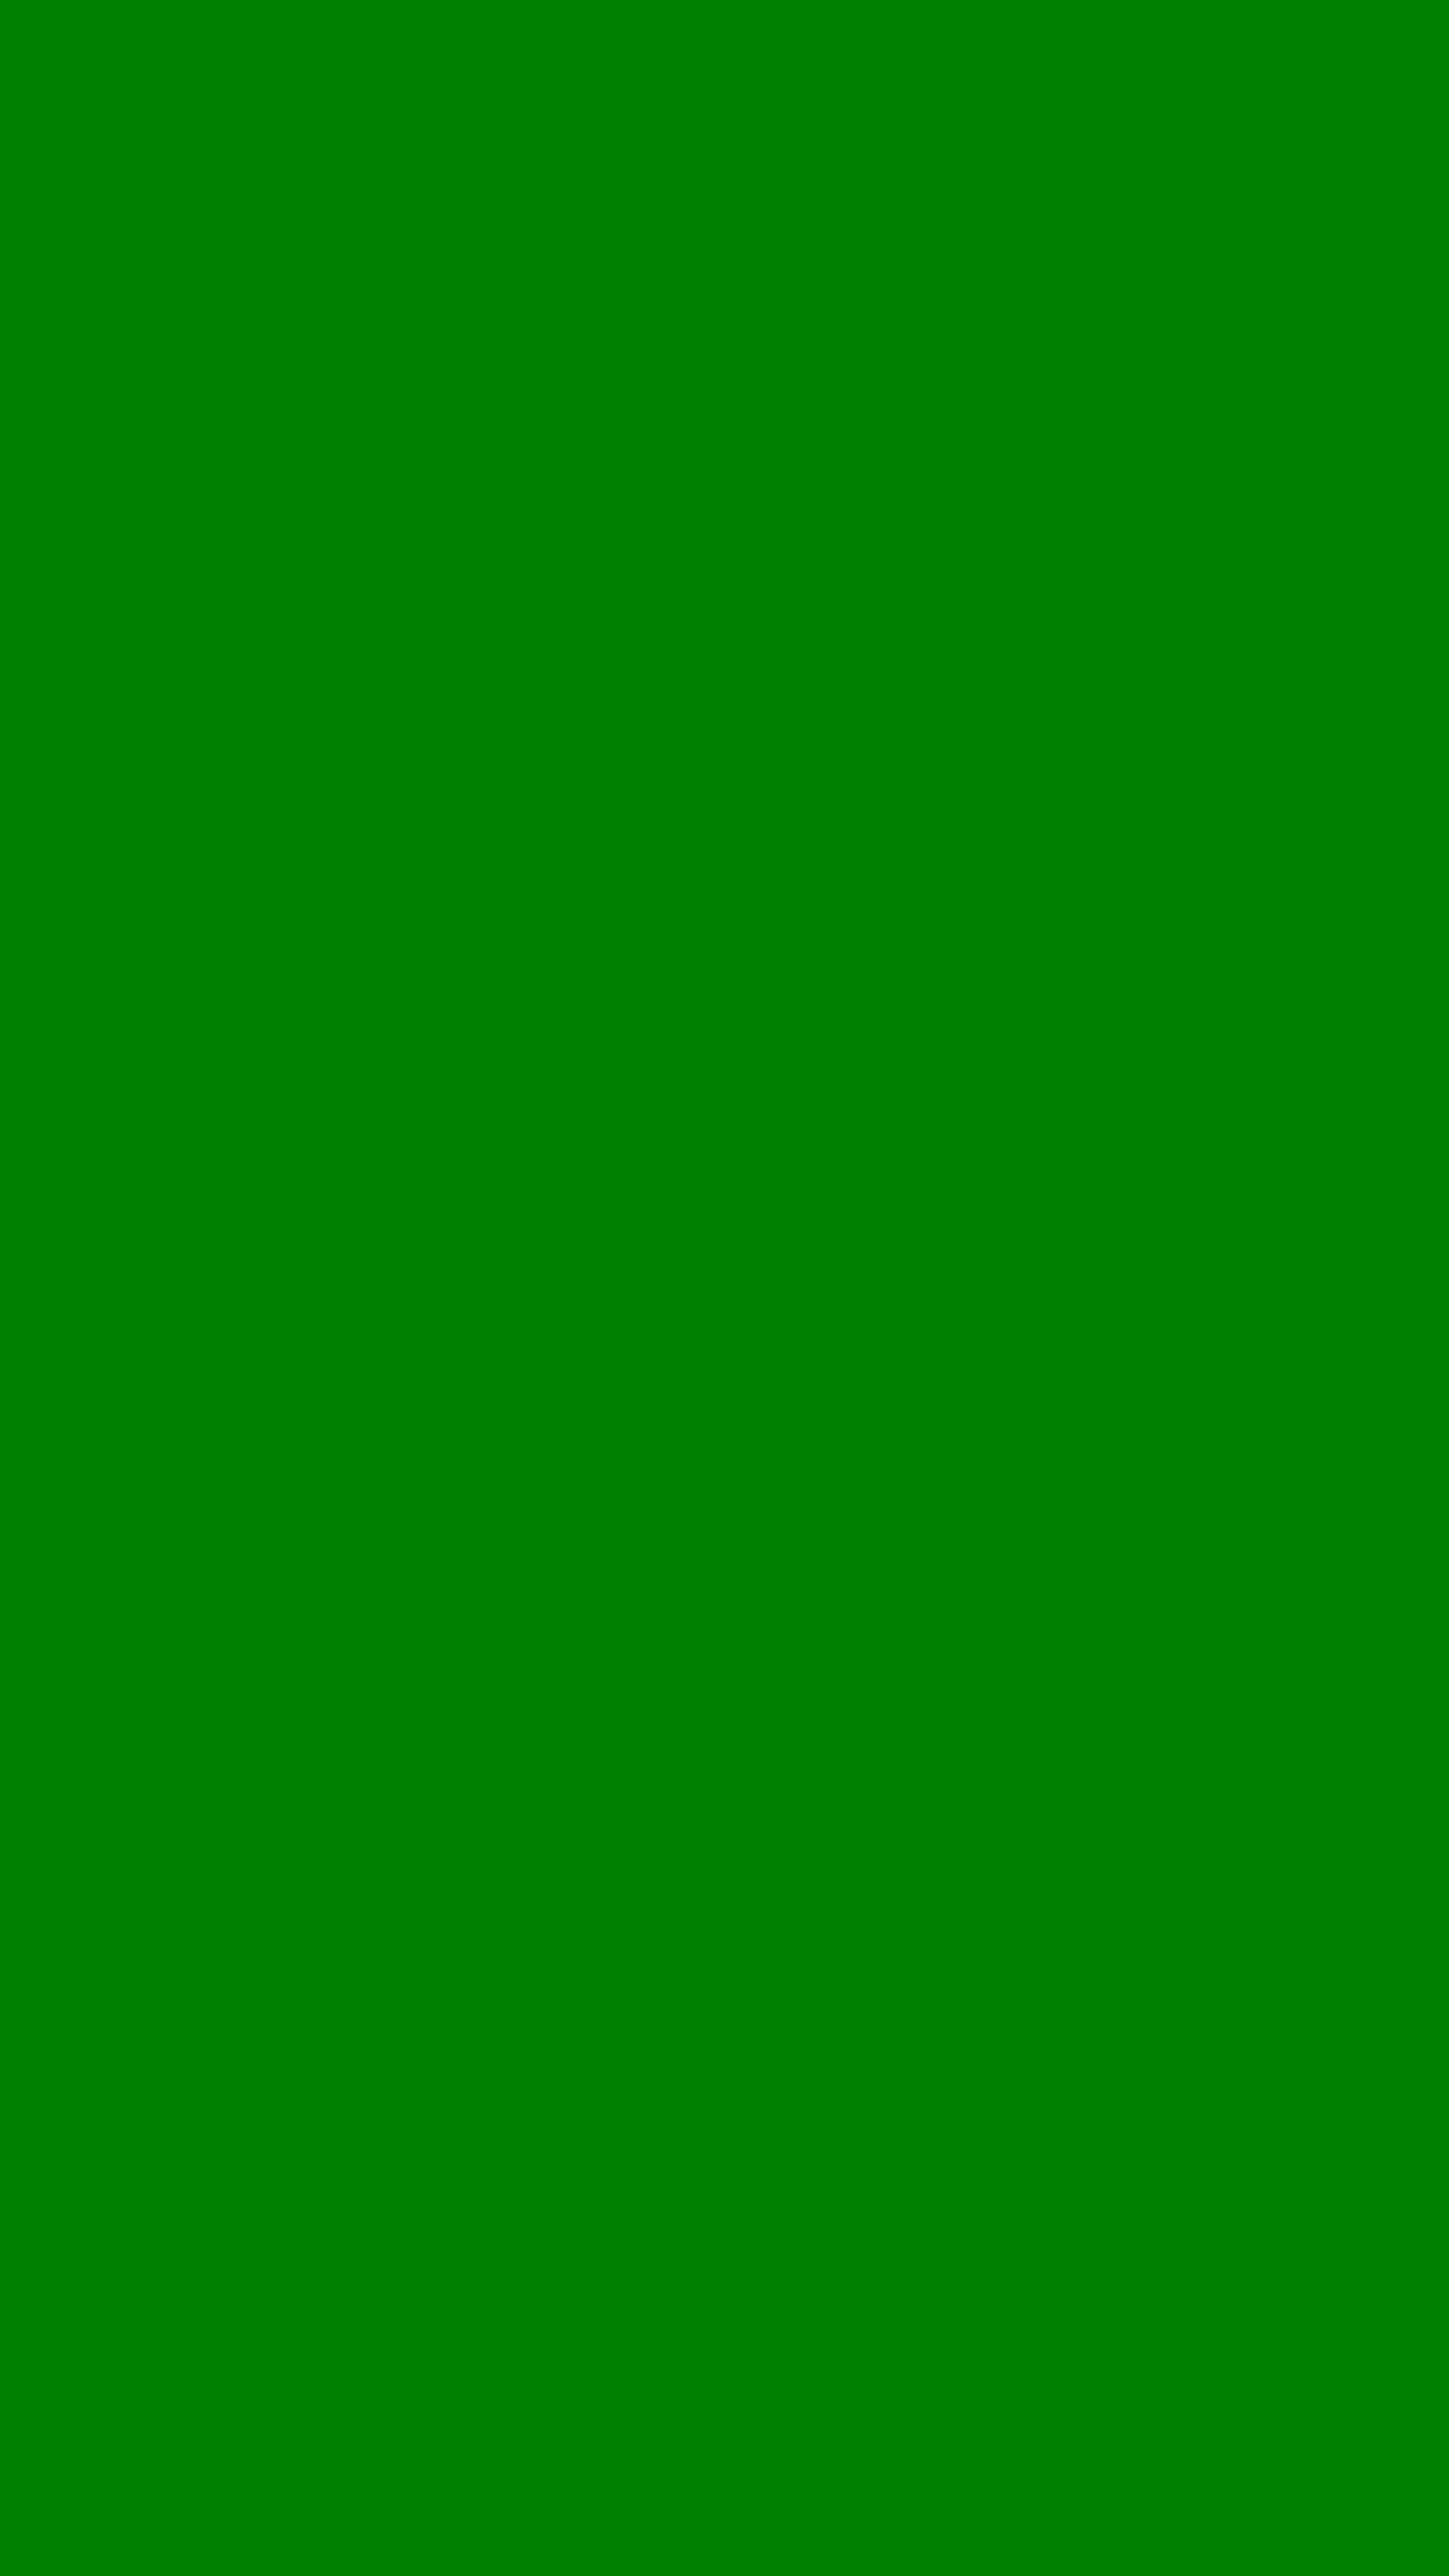 Solid Color Background Wallpaper for